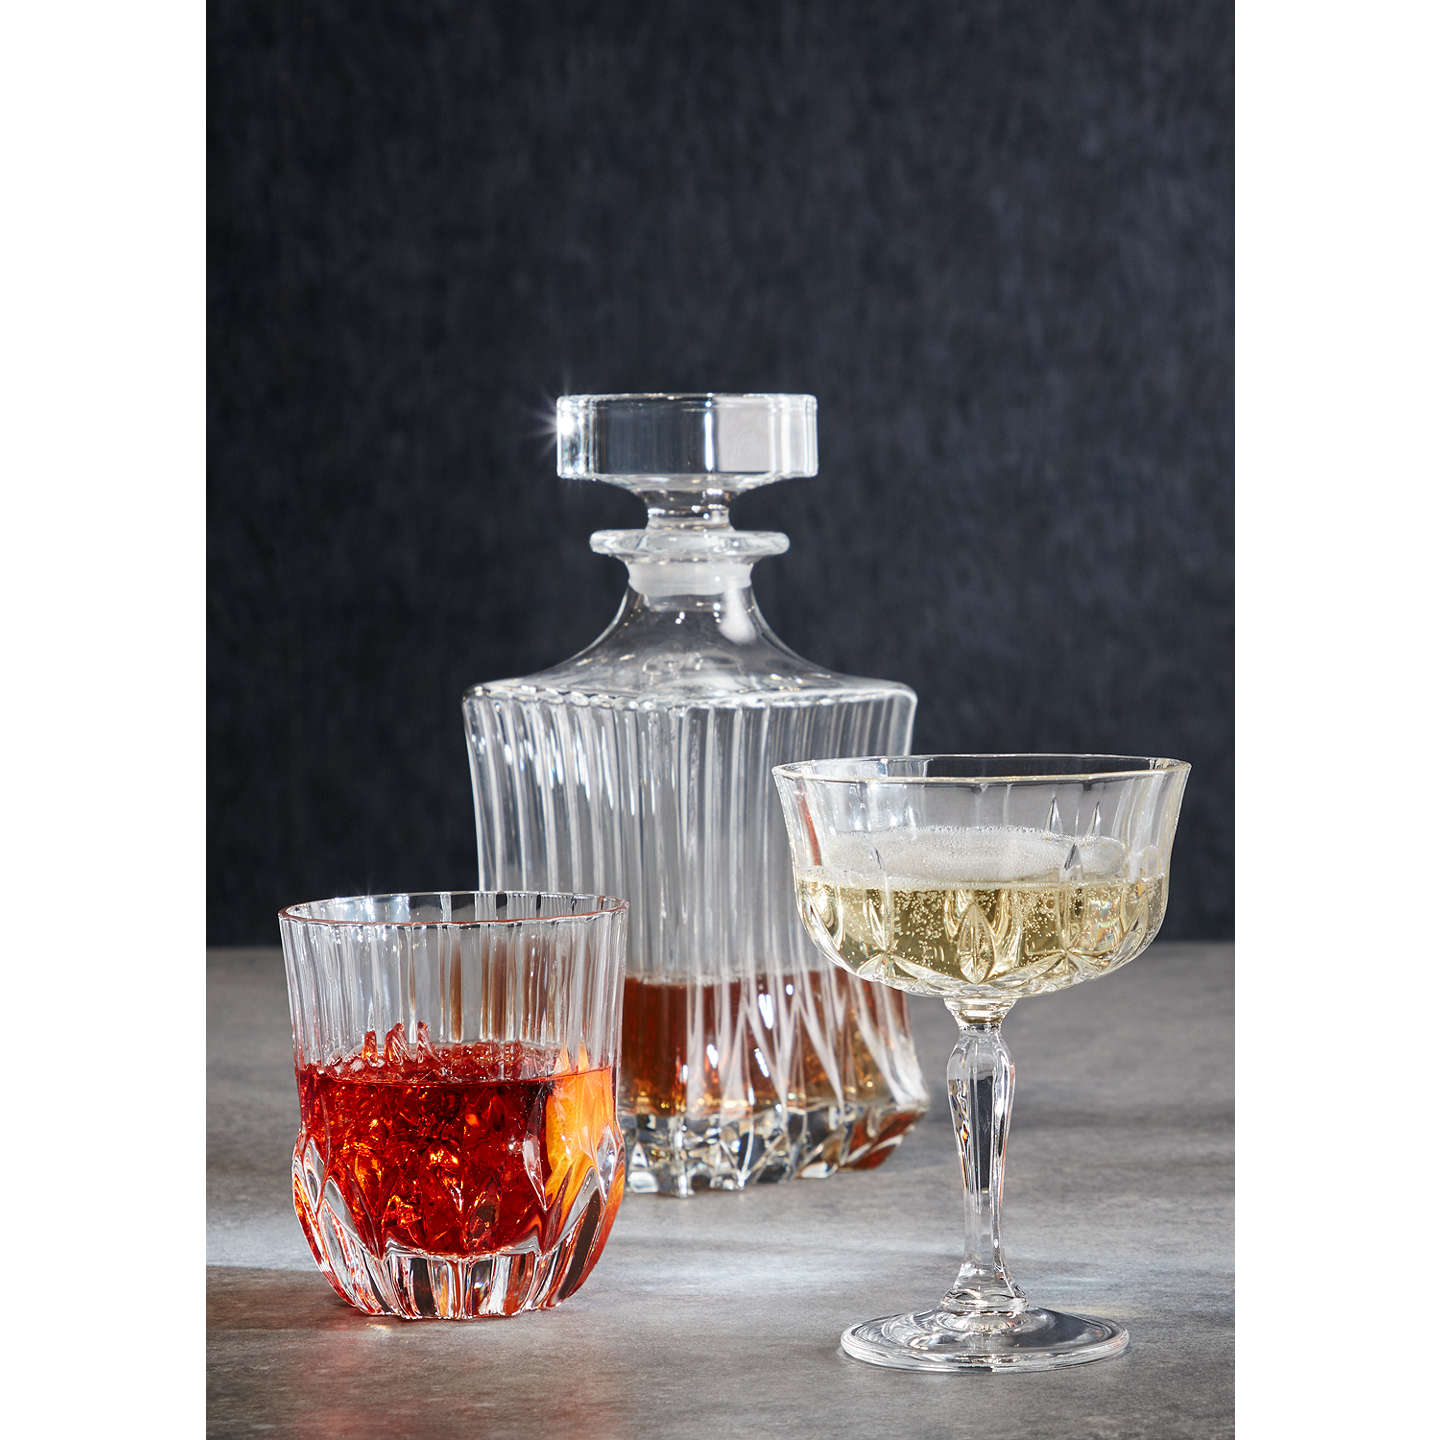 BuyJohn Lewis Paloma Crystal Glass Cocktail Coupe Online at johnlewis.com